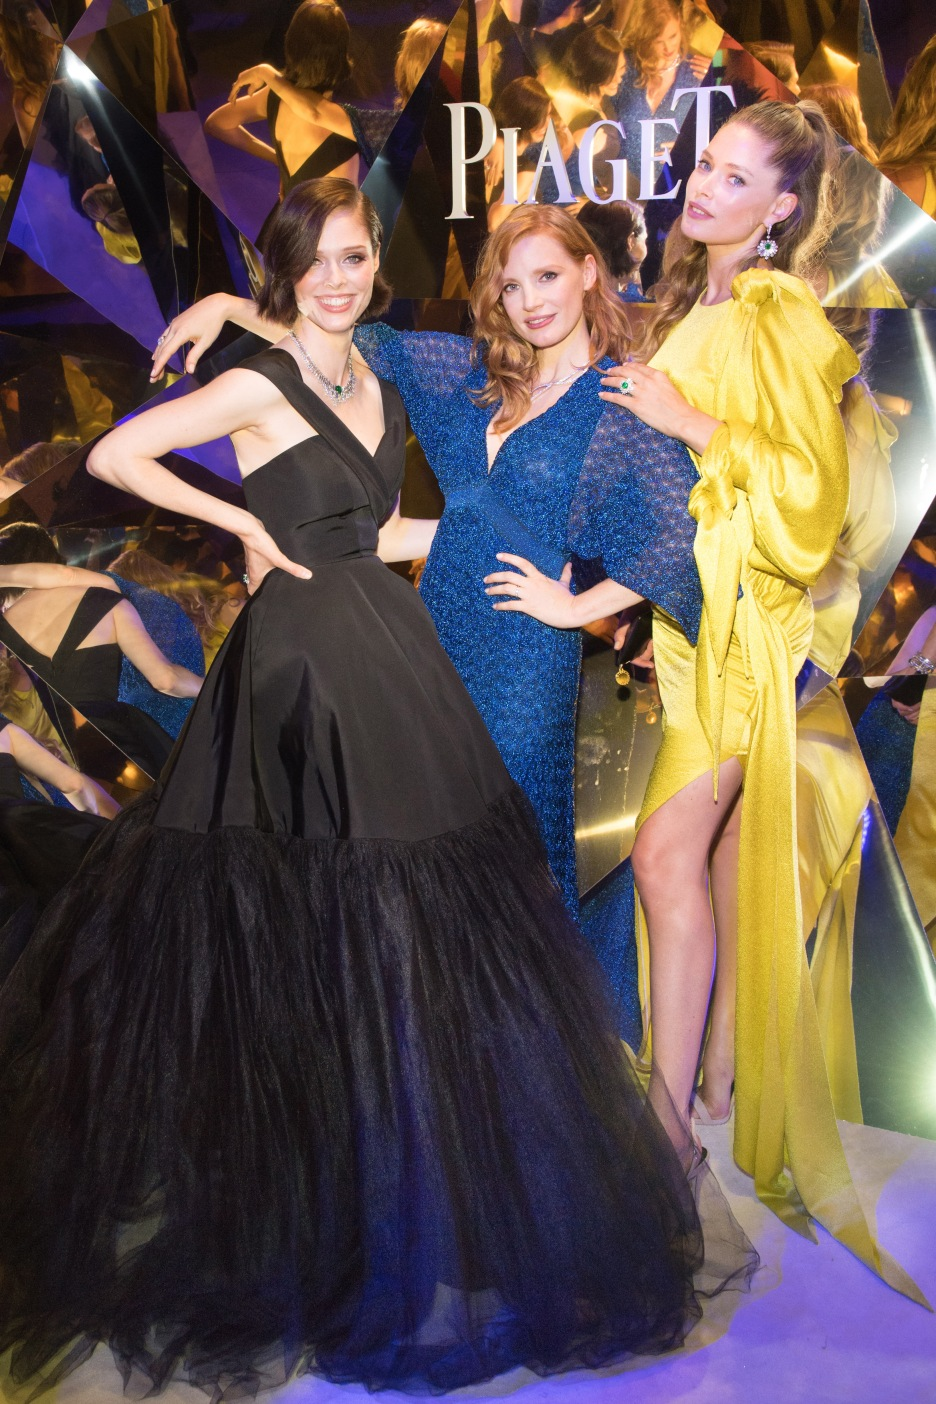 PARIS, FRANCE - JUNE 18: Coco Rocha, Jessica Chastain and Doutzen Kroes attend the Launch of Piaget sunlight escape at Palais d'Iena on June 18, 2018 in Paris, France. (Photo by Stephane Cardinale/For Piaget) *** Local Caption ***Coco Rocha, Jessica Chastain, Doutzen Kroes